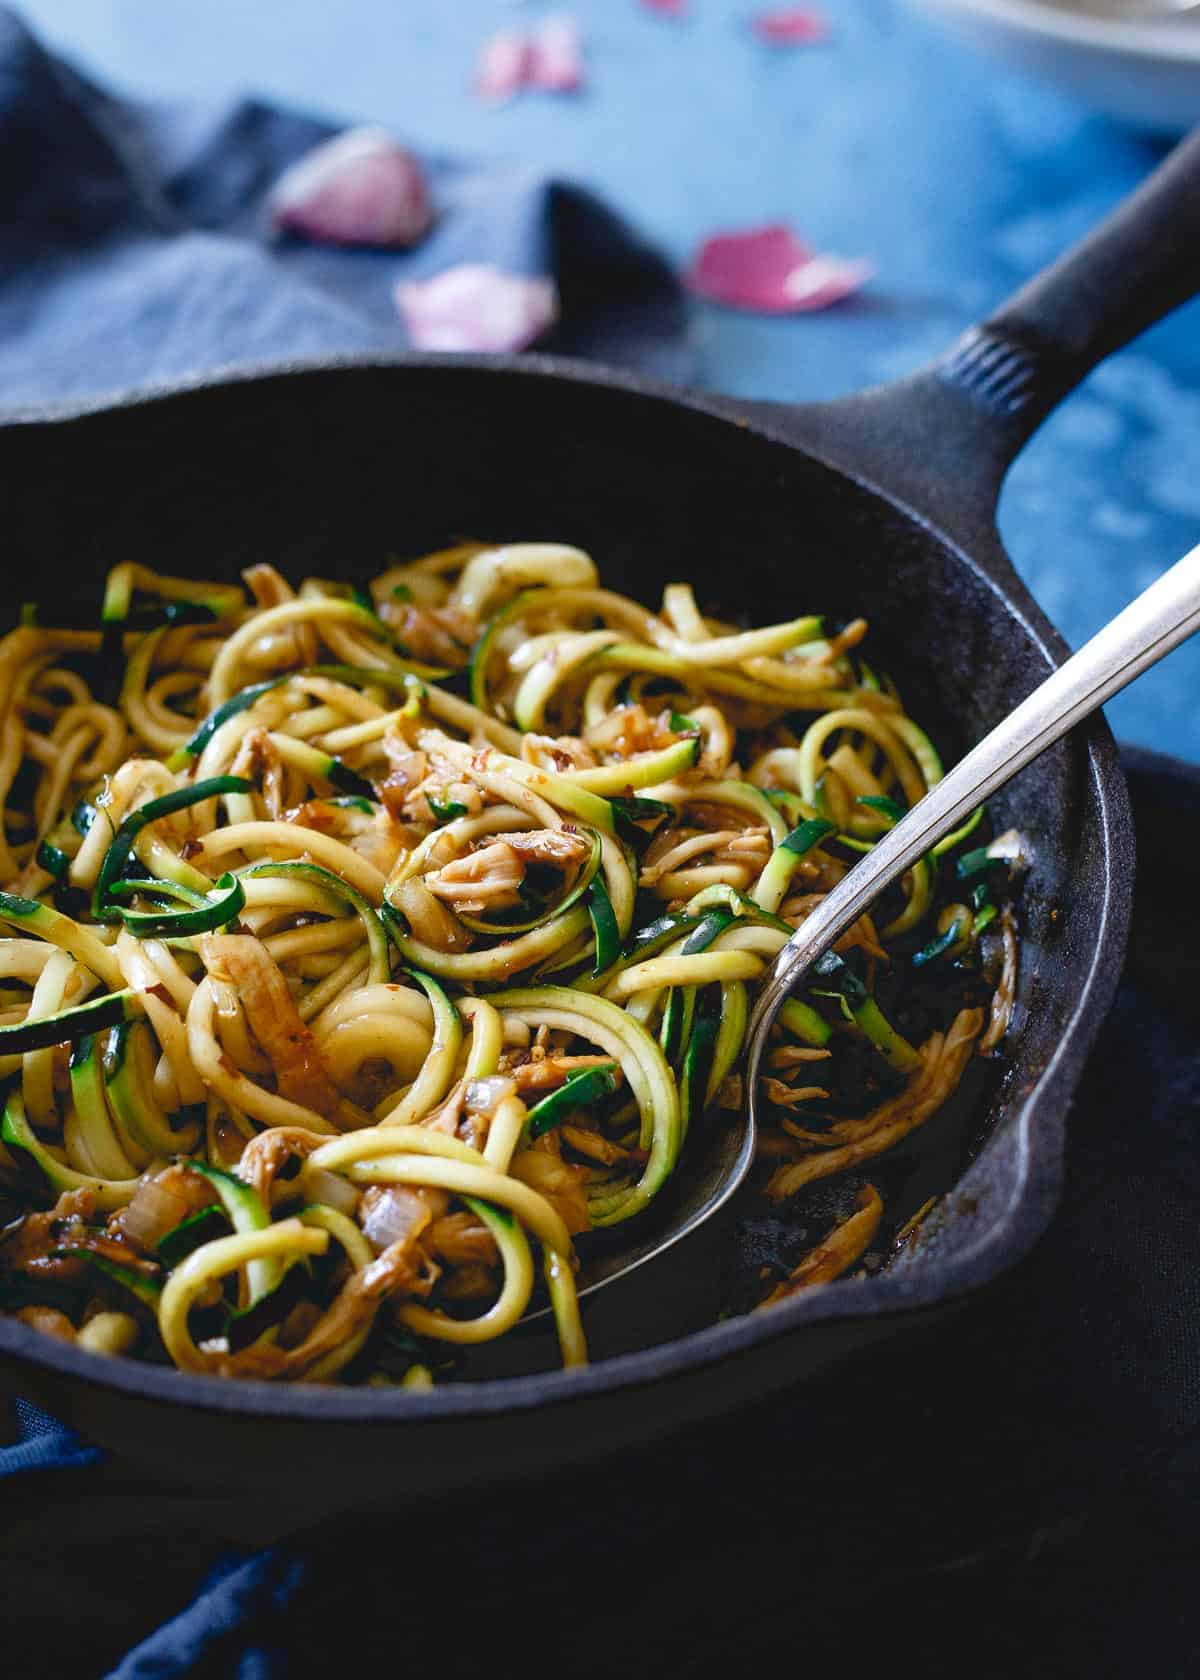 New Years is the perfect time to pick up a spiralizer and make healthier versions of your favorite takeout meals like this Chinese chicken zoodle dish!